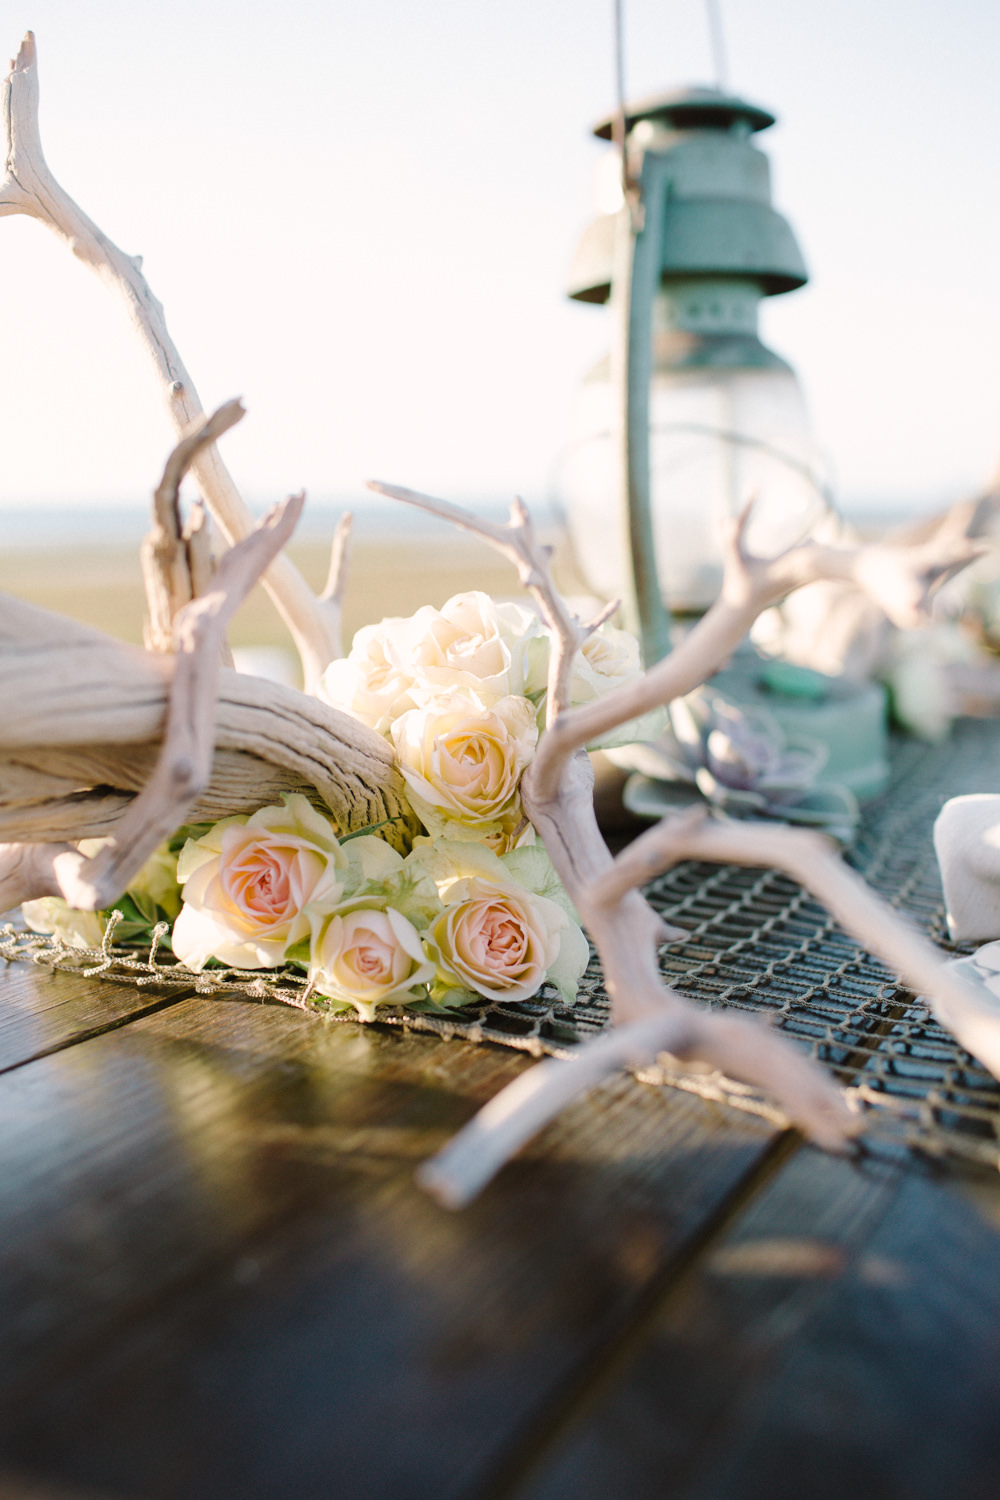 Key-West-Wedding-Styled-Shoot-Fort-Zachary-Taylor-Beach-22.jpg